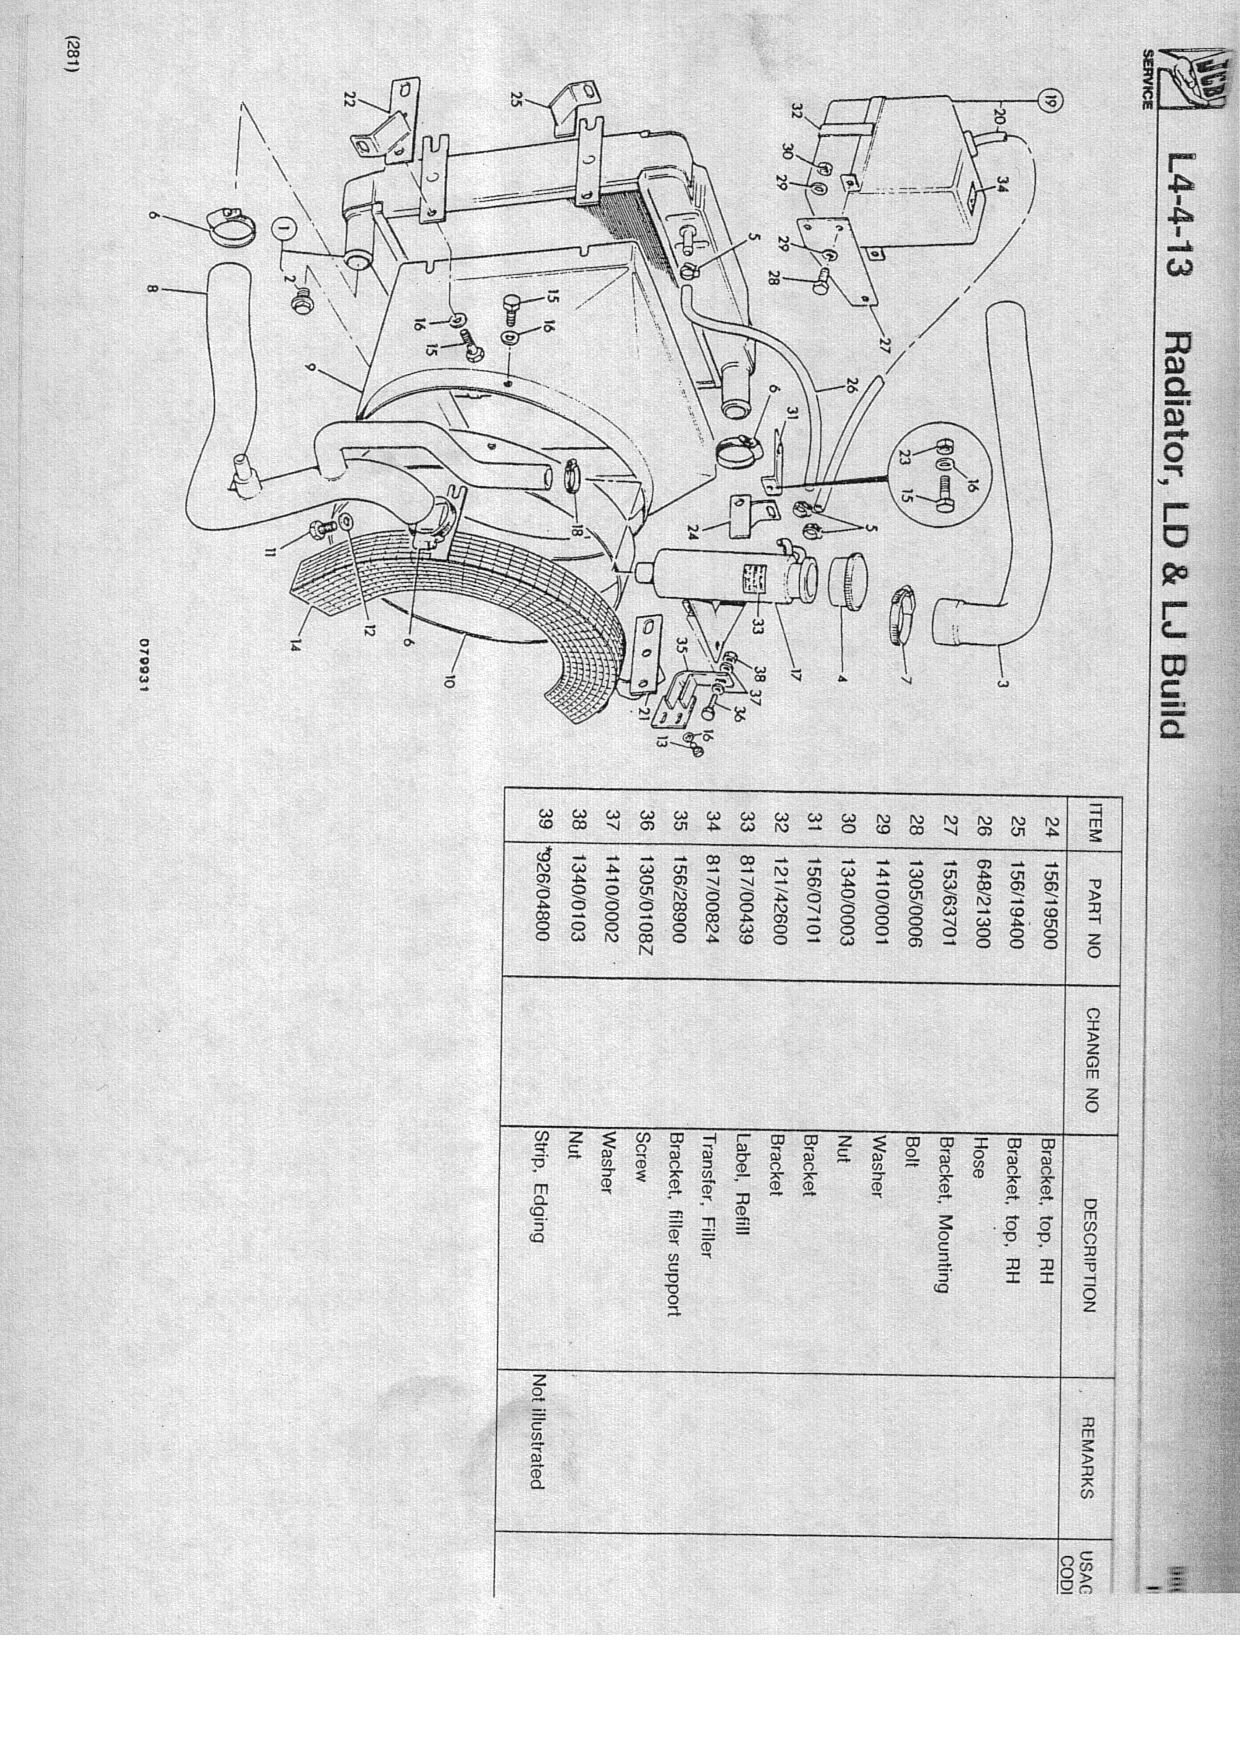 Jcb Backhoe Wiring Schematics Electrical Diagrams Schematic Diagram On 1984 Private Sharing About Genie